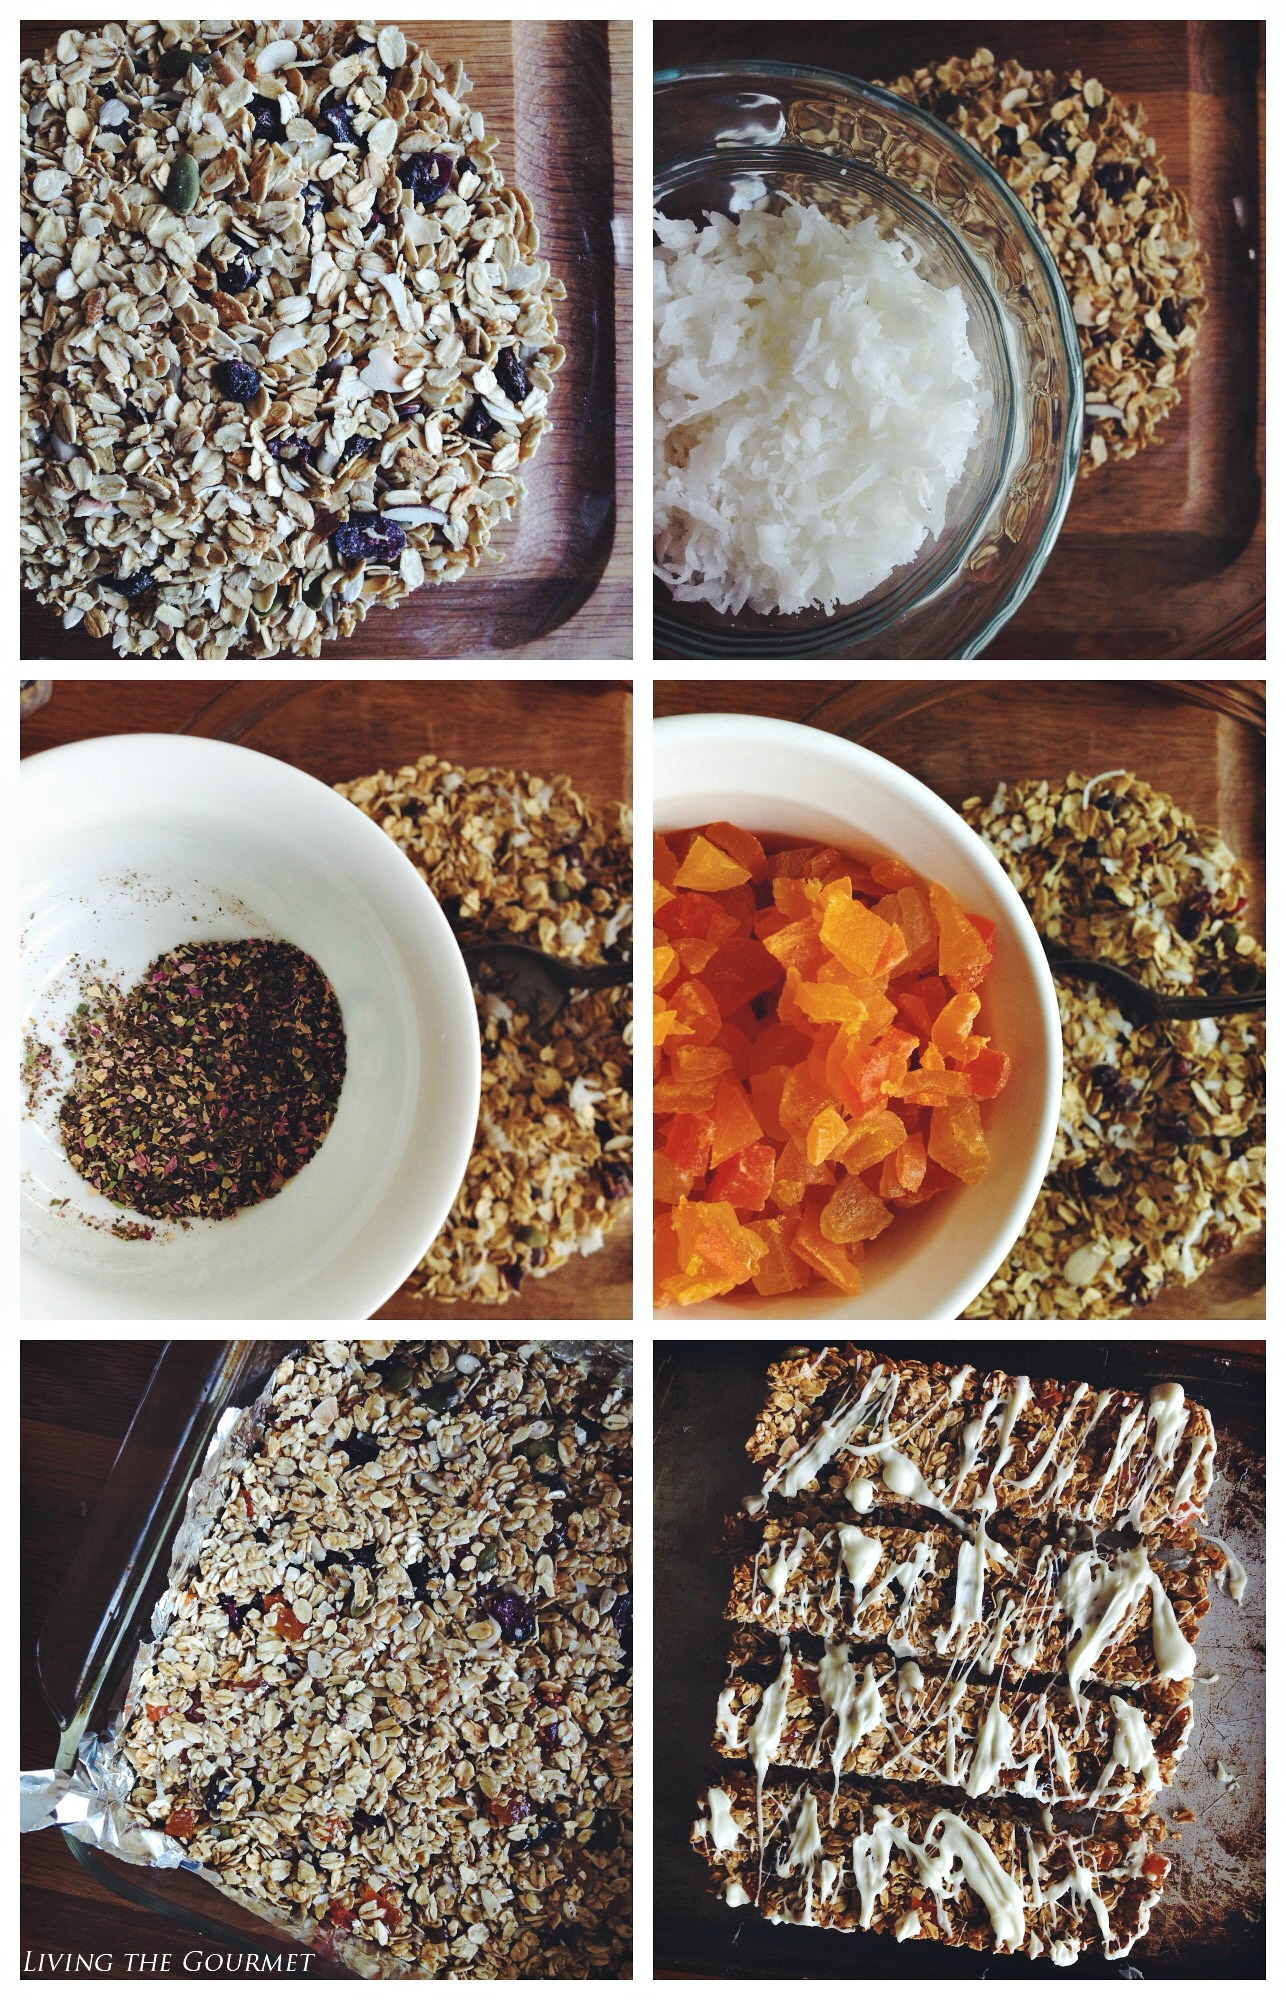 Living the Gourmet: Muesli Granola Bars #mueslichallenge #muesli #mueslirecipes #sp